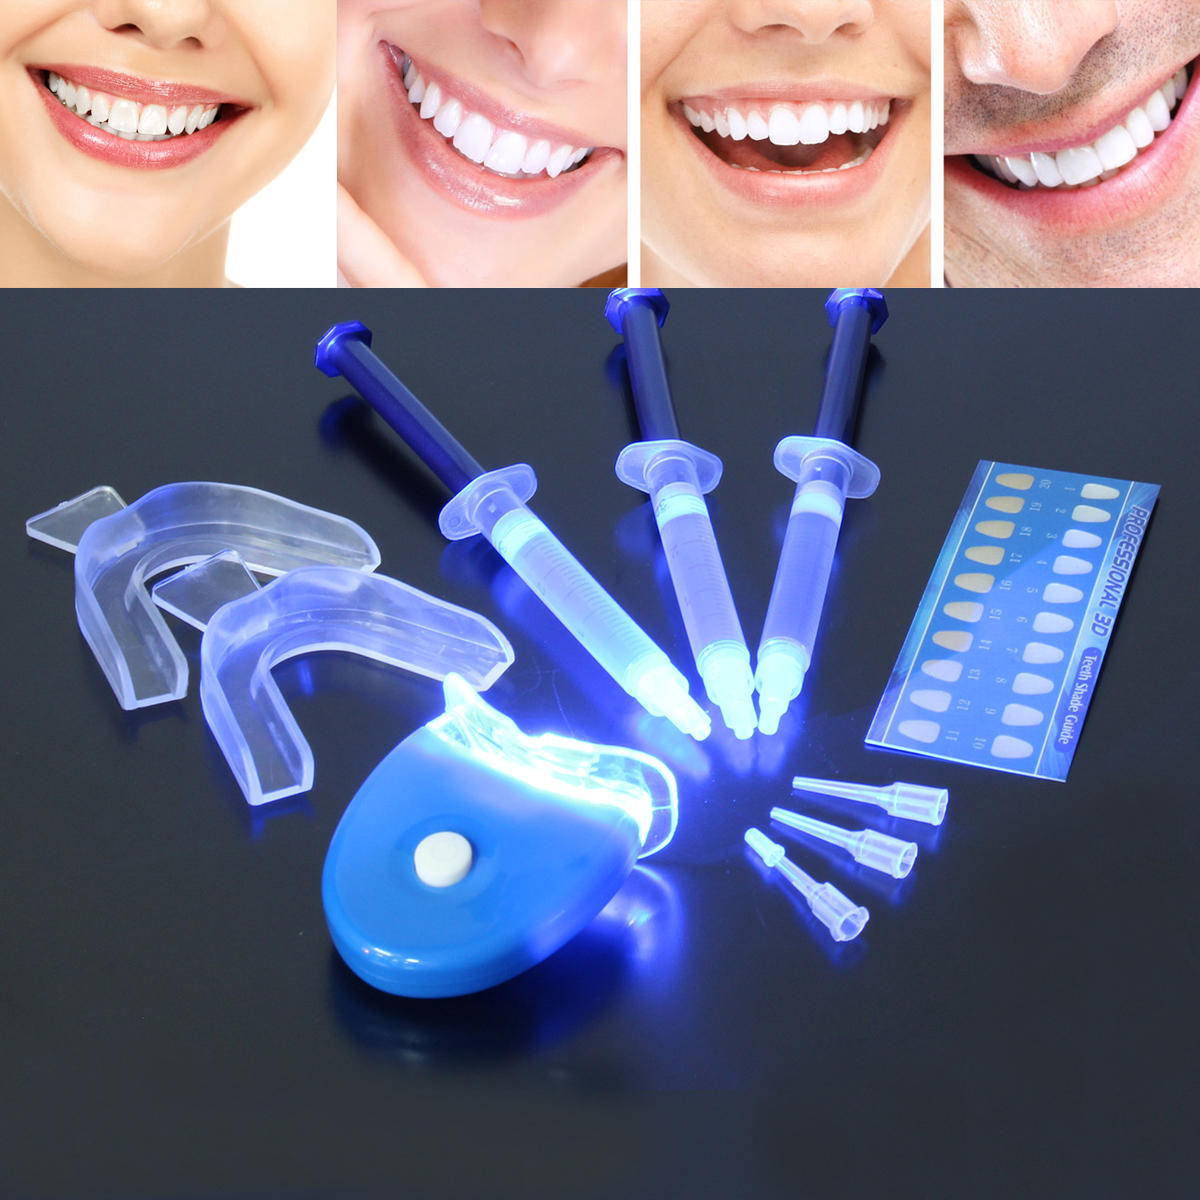 Dental Teeth Whitening Kit Carbamide Peroxide Bleaching System